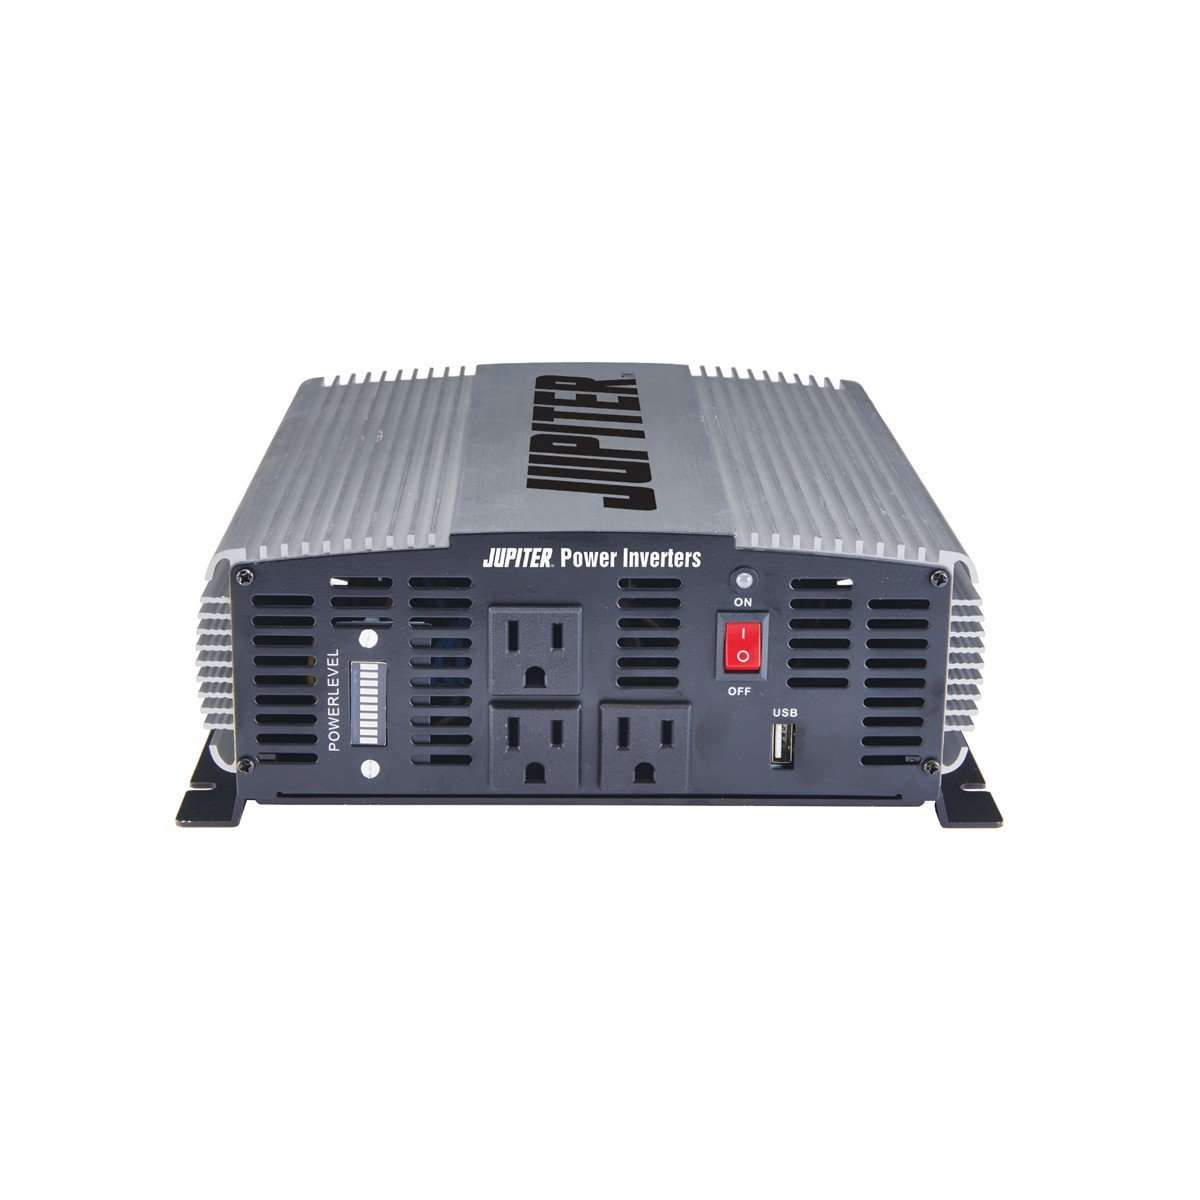 Jupiter Power Inverter 2000w (4000w Peak) converts vehicle 12v DC to House 120v power 3-120v AC outlets 1-2.1AMP USB plus protection from hi/lo voltage, high currents, high temp & short circuit